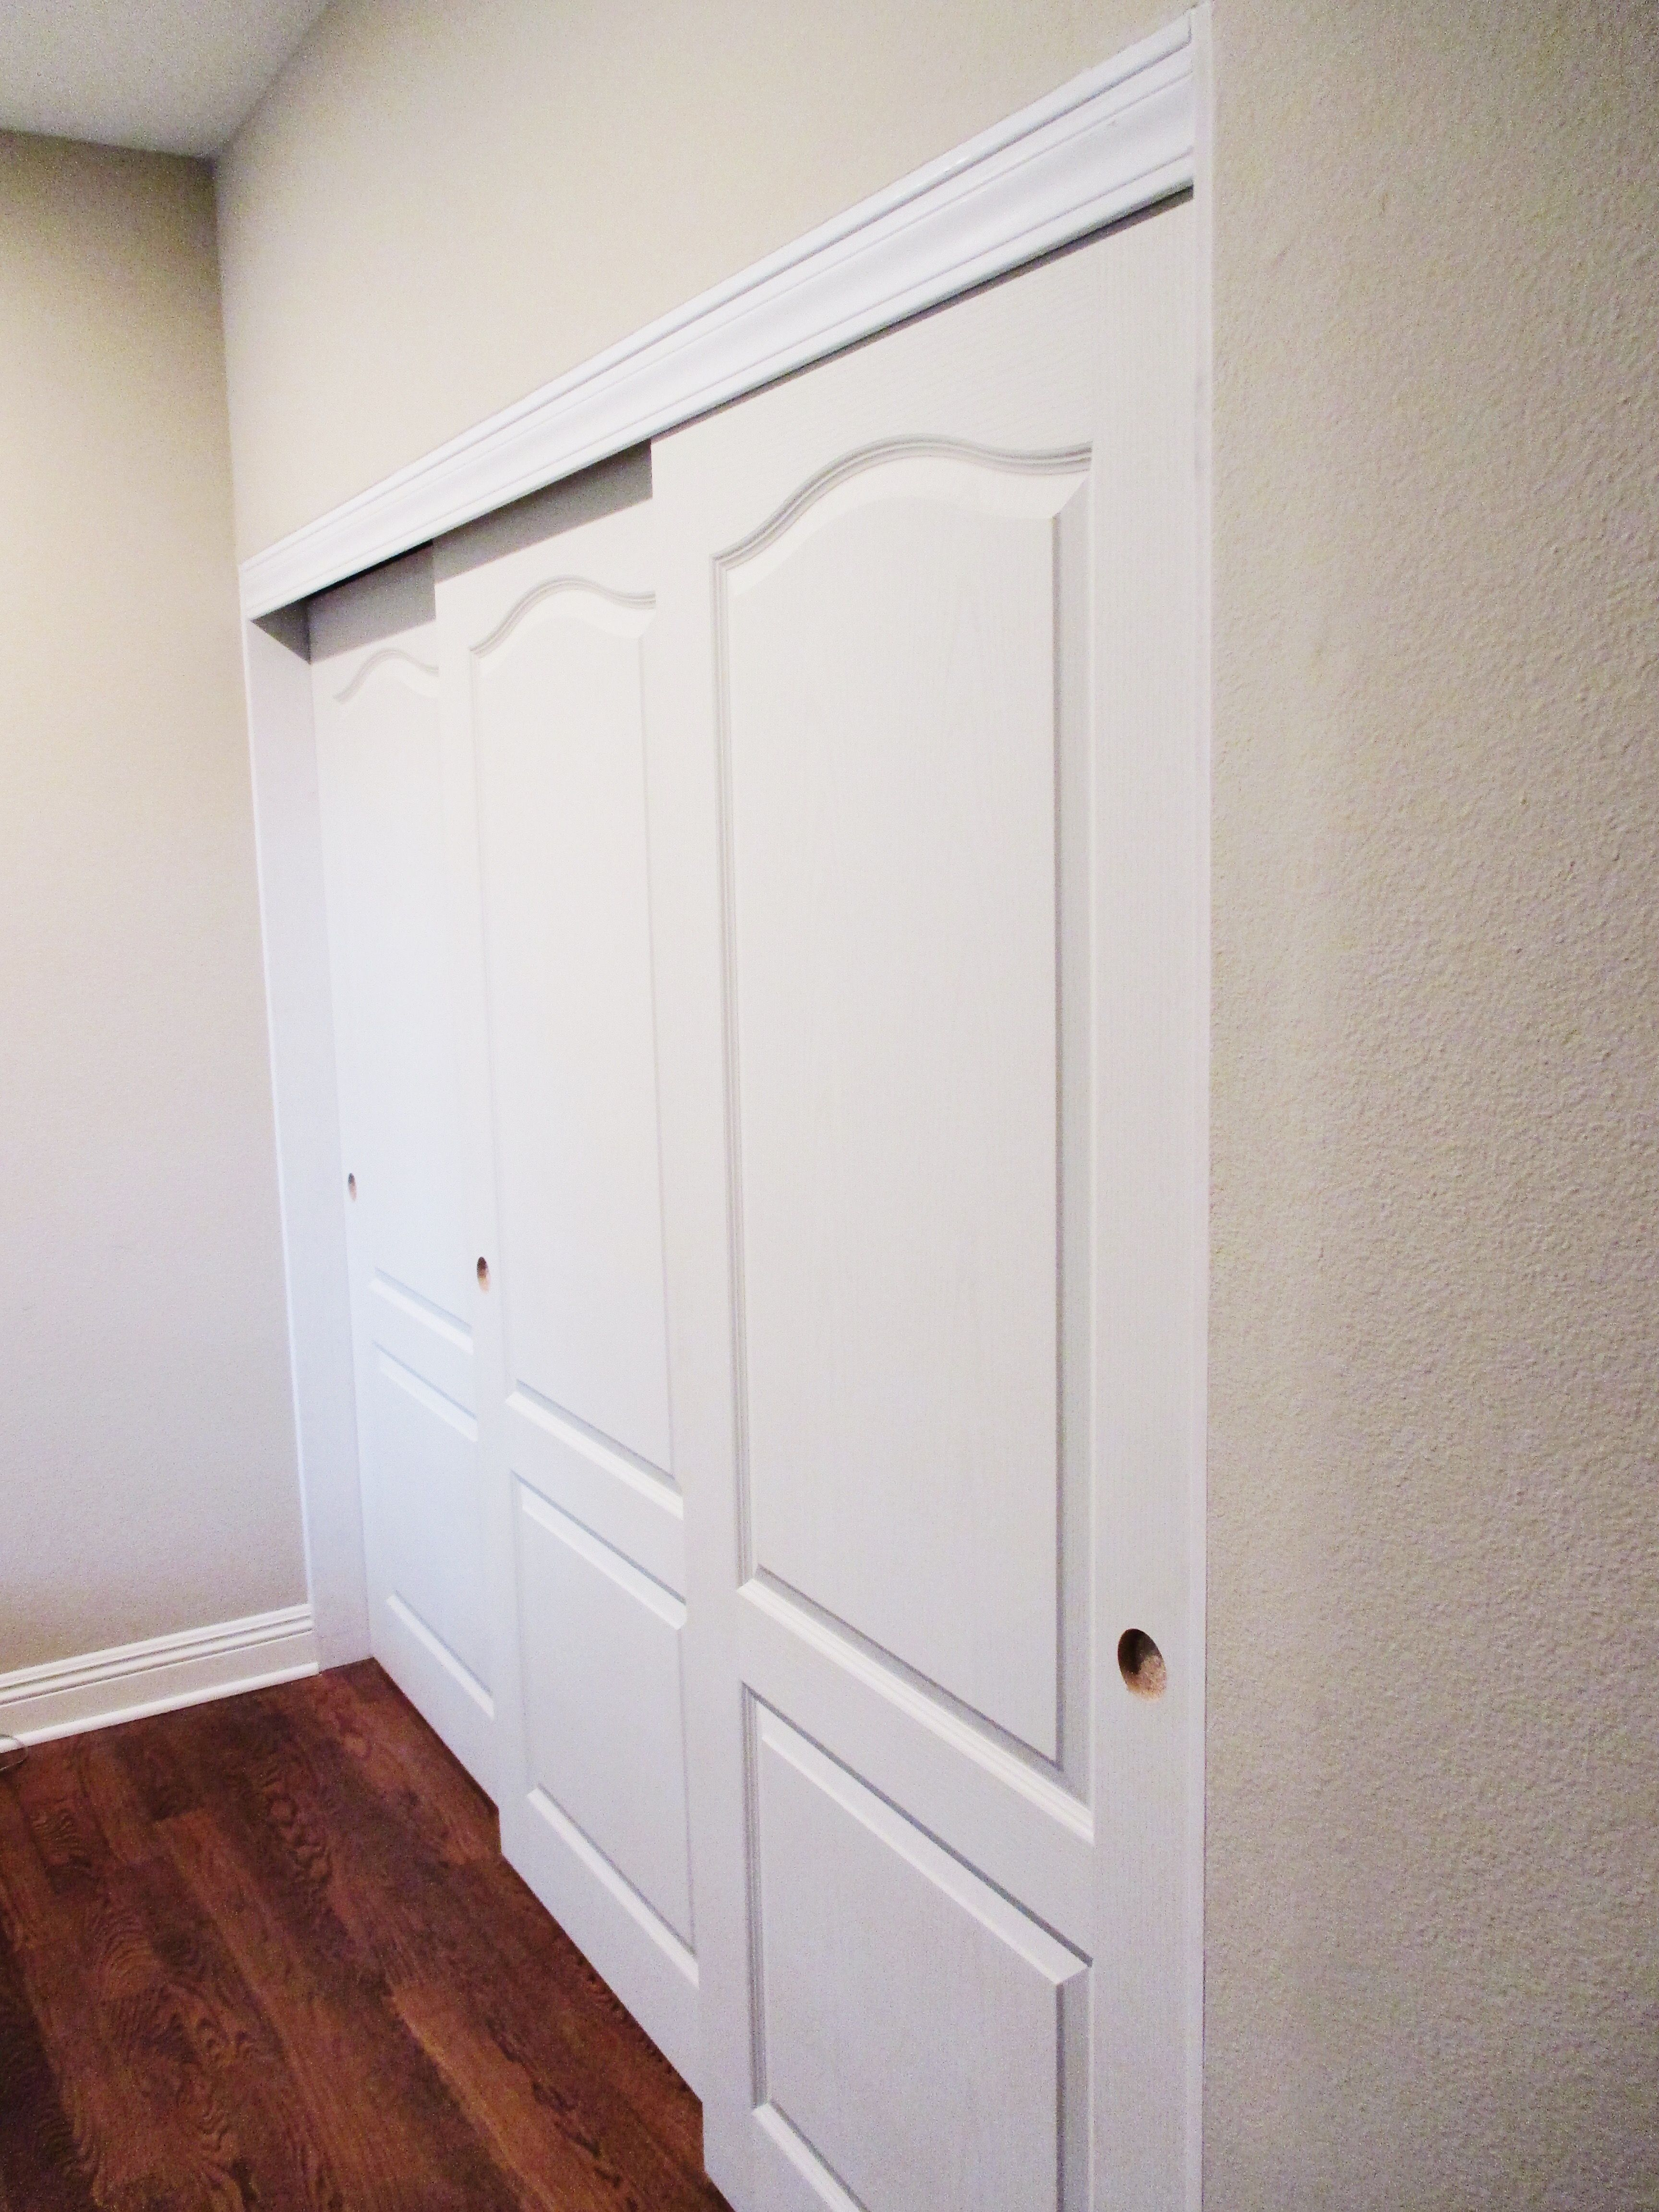 Do Your Old Closet Doors Need To Be Replaced Asap Check Out These Gorgeous 3 Panel 3 Track Top Hung Princ Old Closet Doors Closet Doors Bifold Closet Doors